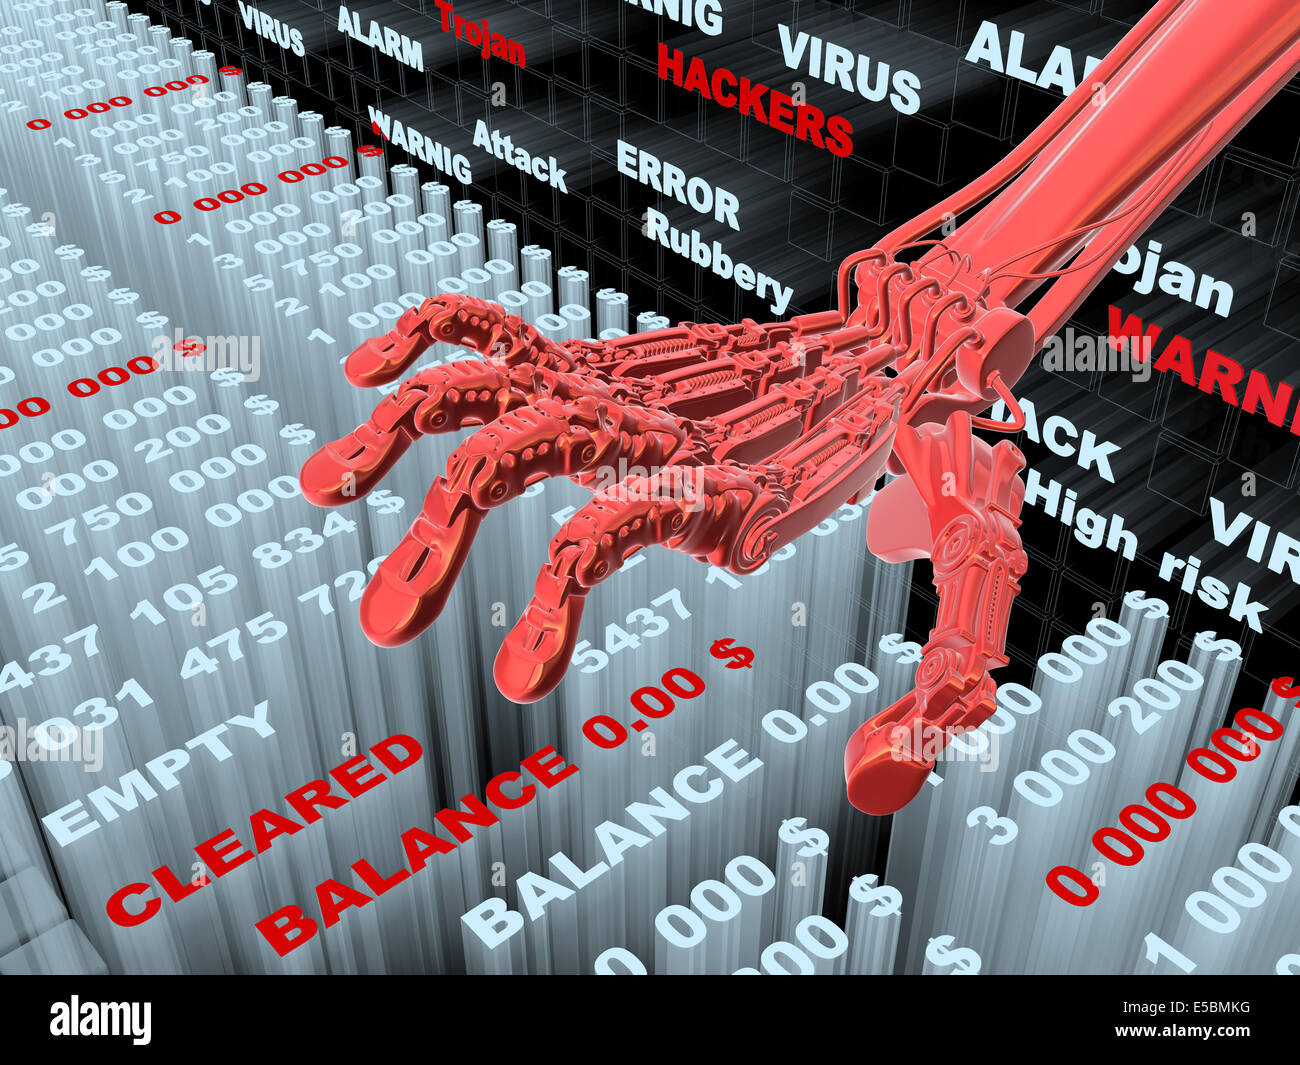 Hacking informations bancaires. Le vol de l'argent du compte. 3d illustration conceptuelle Photo Stock